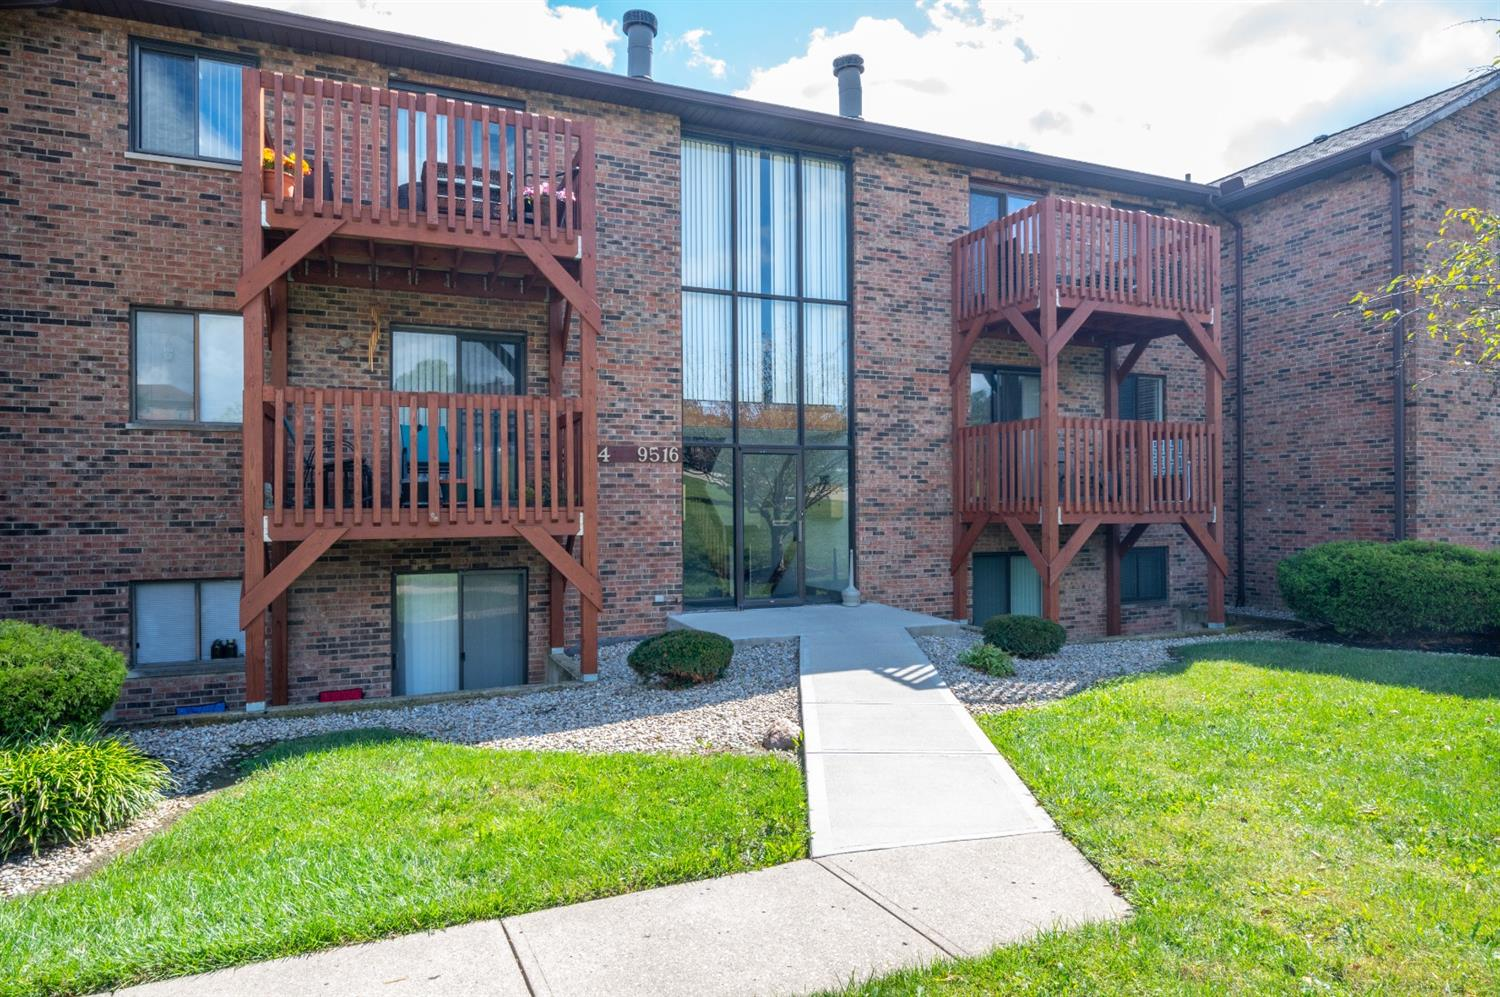 9494 Woodland Hills Drive, West Chester, Ohio 45011, 2 Bedrooms Bedrooms, 5 Rooms Rooms,1 BathroomBathrooms,Condominium,For Sale,Woodland Hills,1716883